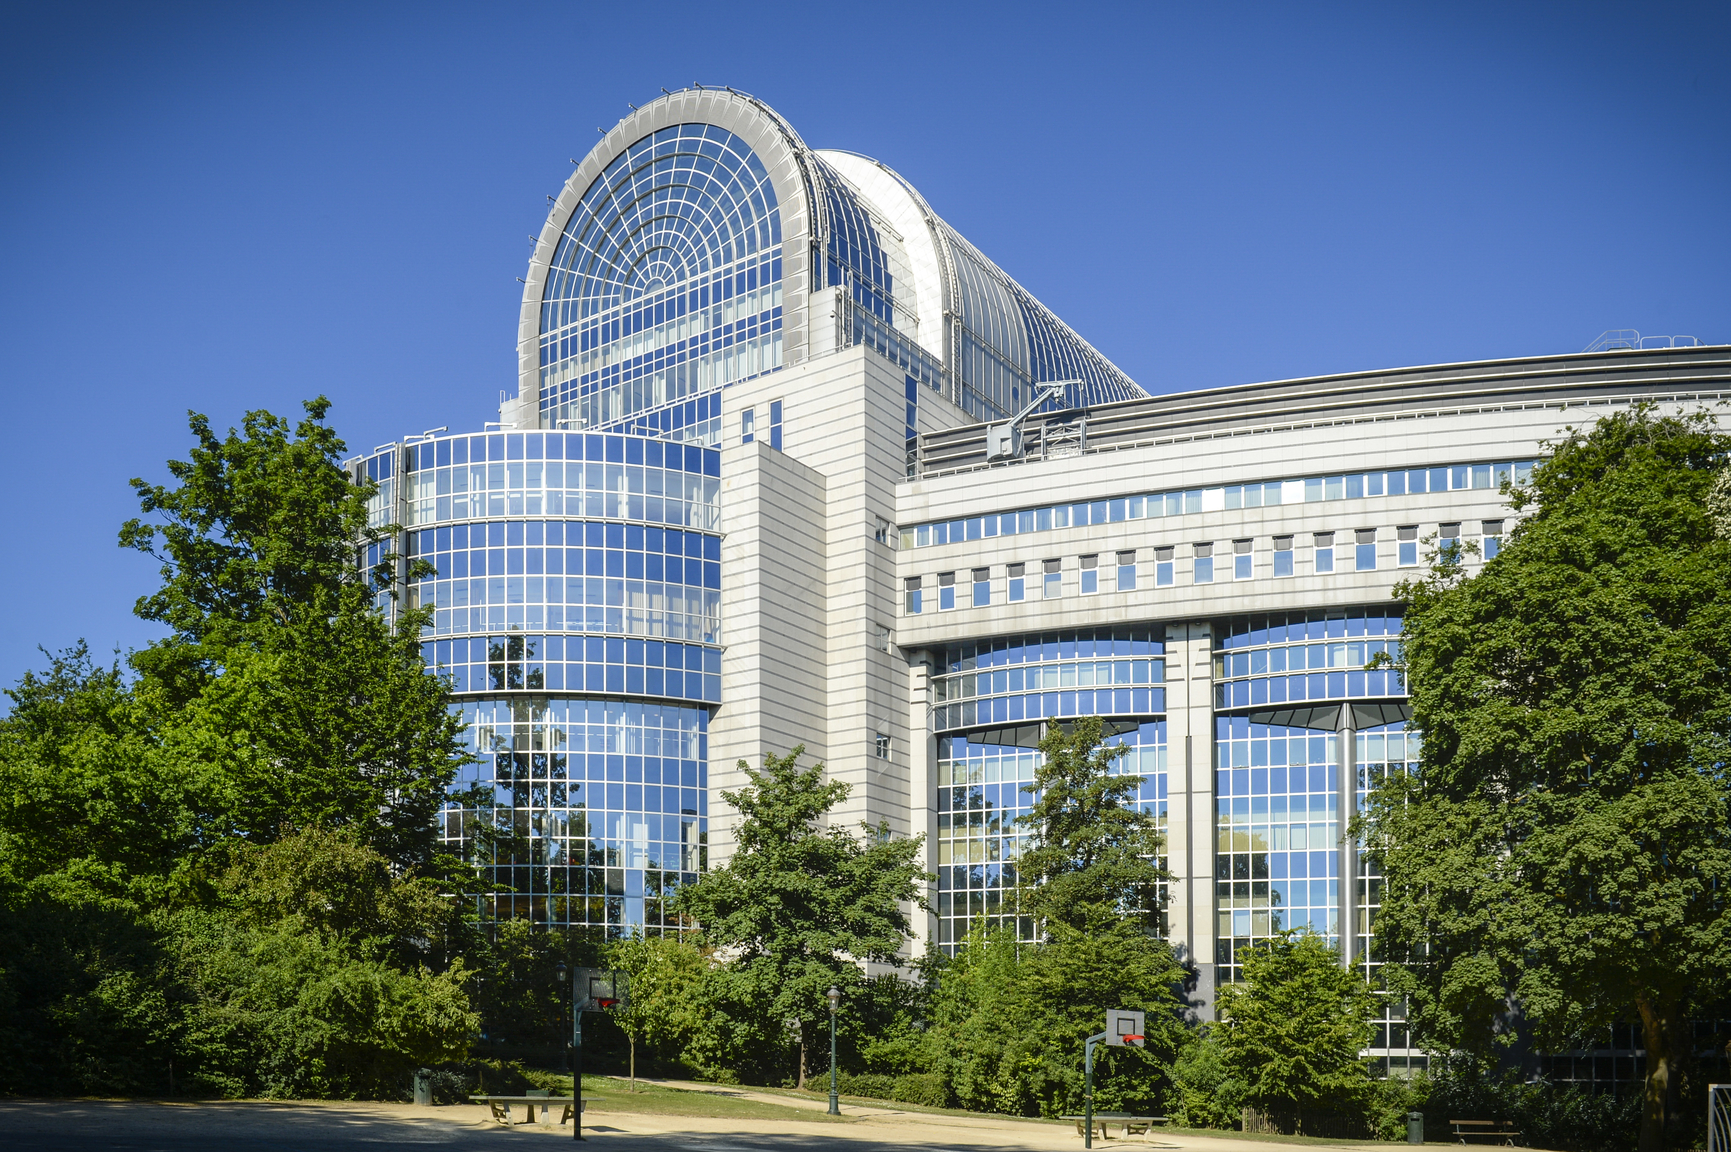 Outside view in summer Paul-Henry Spaak building of the European Parliament in Brussels